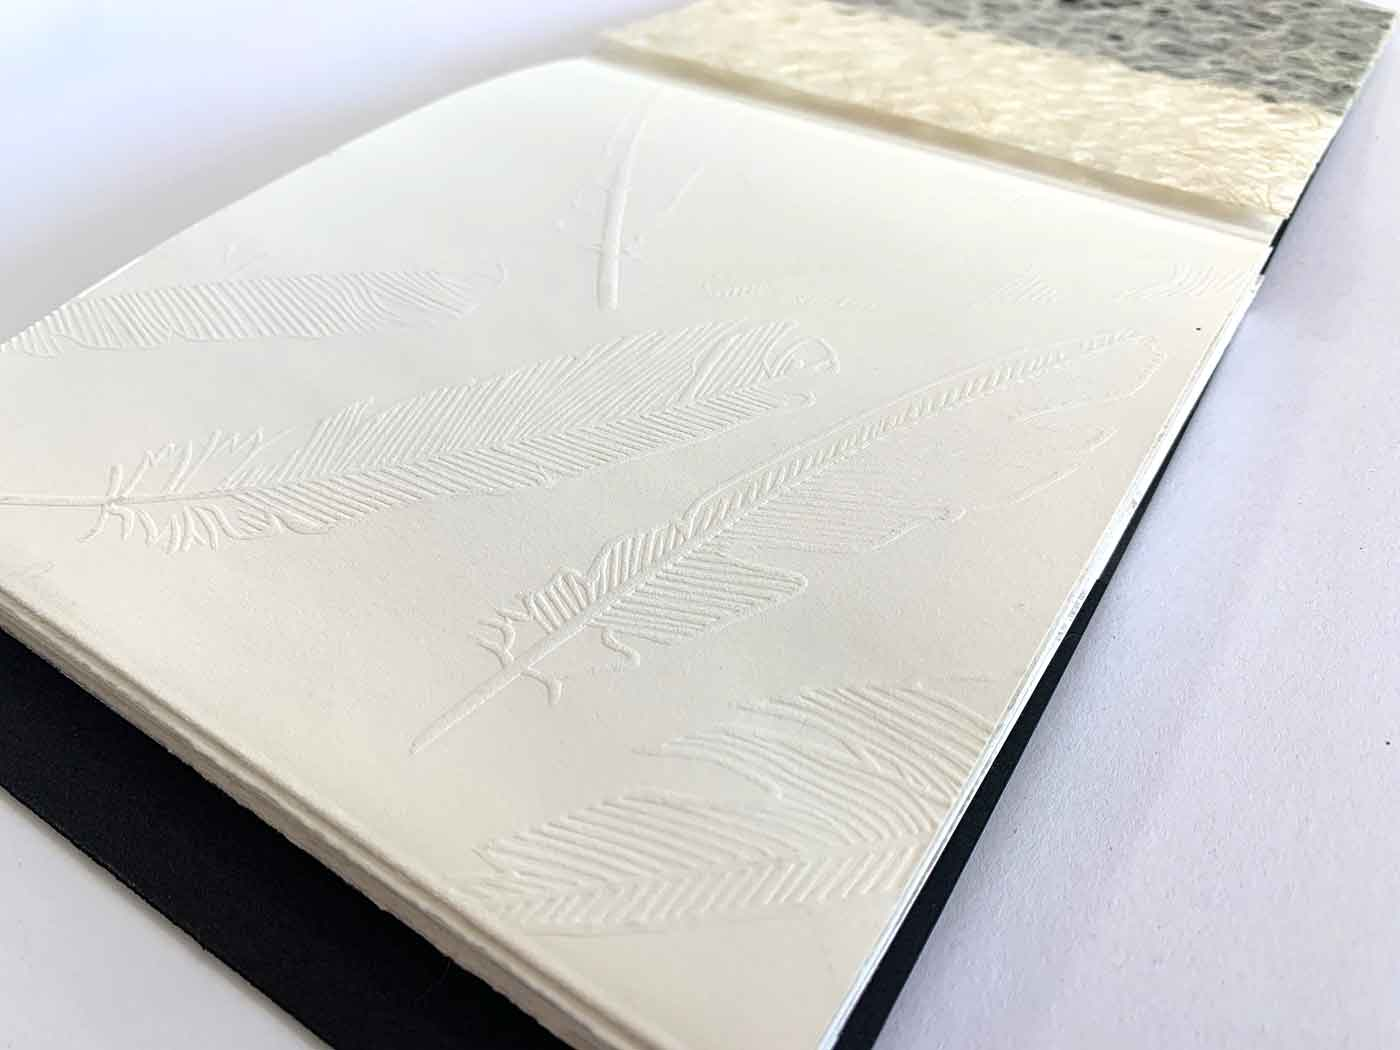 Cover embossing inside the book